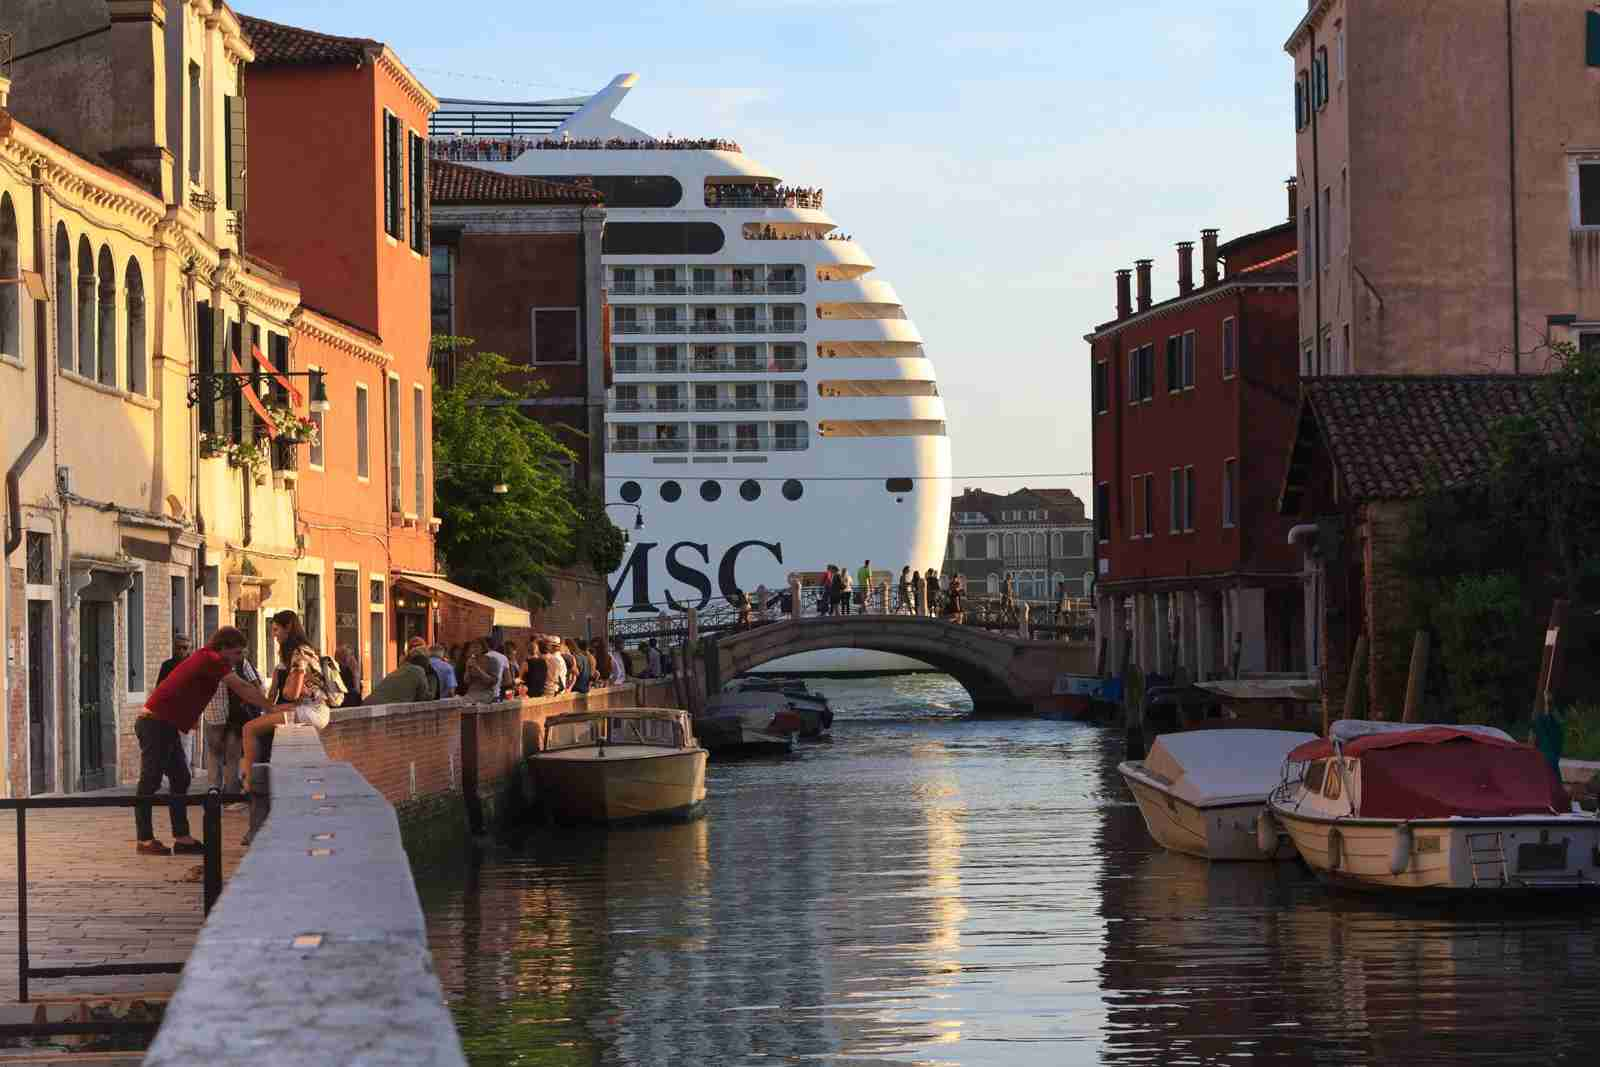 What's Really Happening With Cruise Ships in Venice